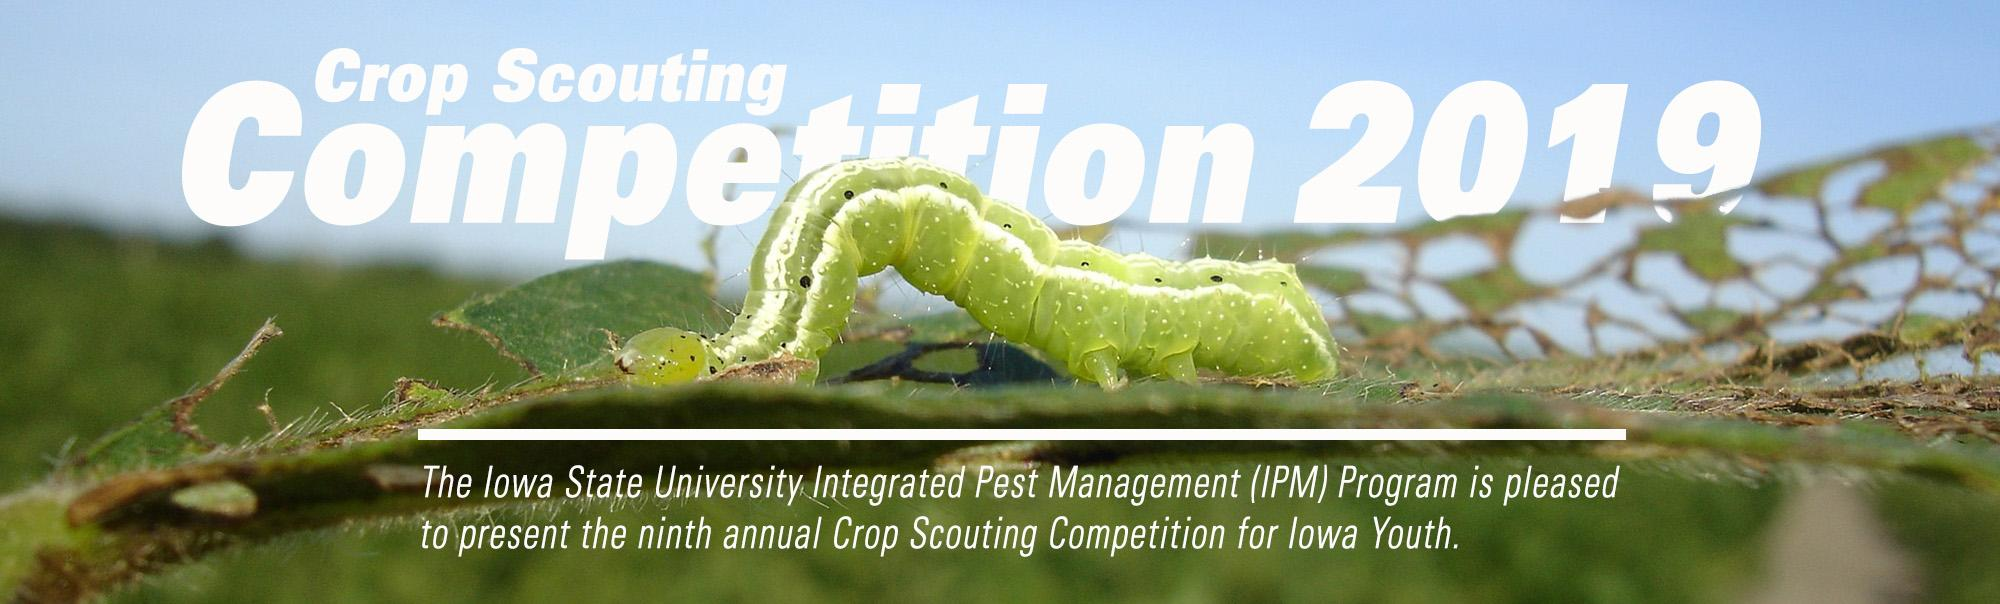 https://www.ipm.iastate.edu/crop-scouting-competition-iowa-youth-2019